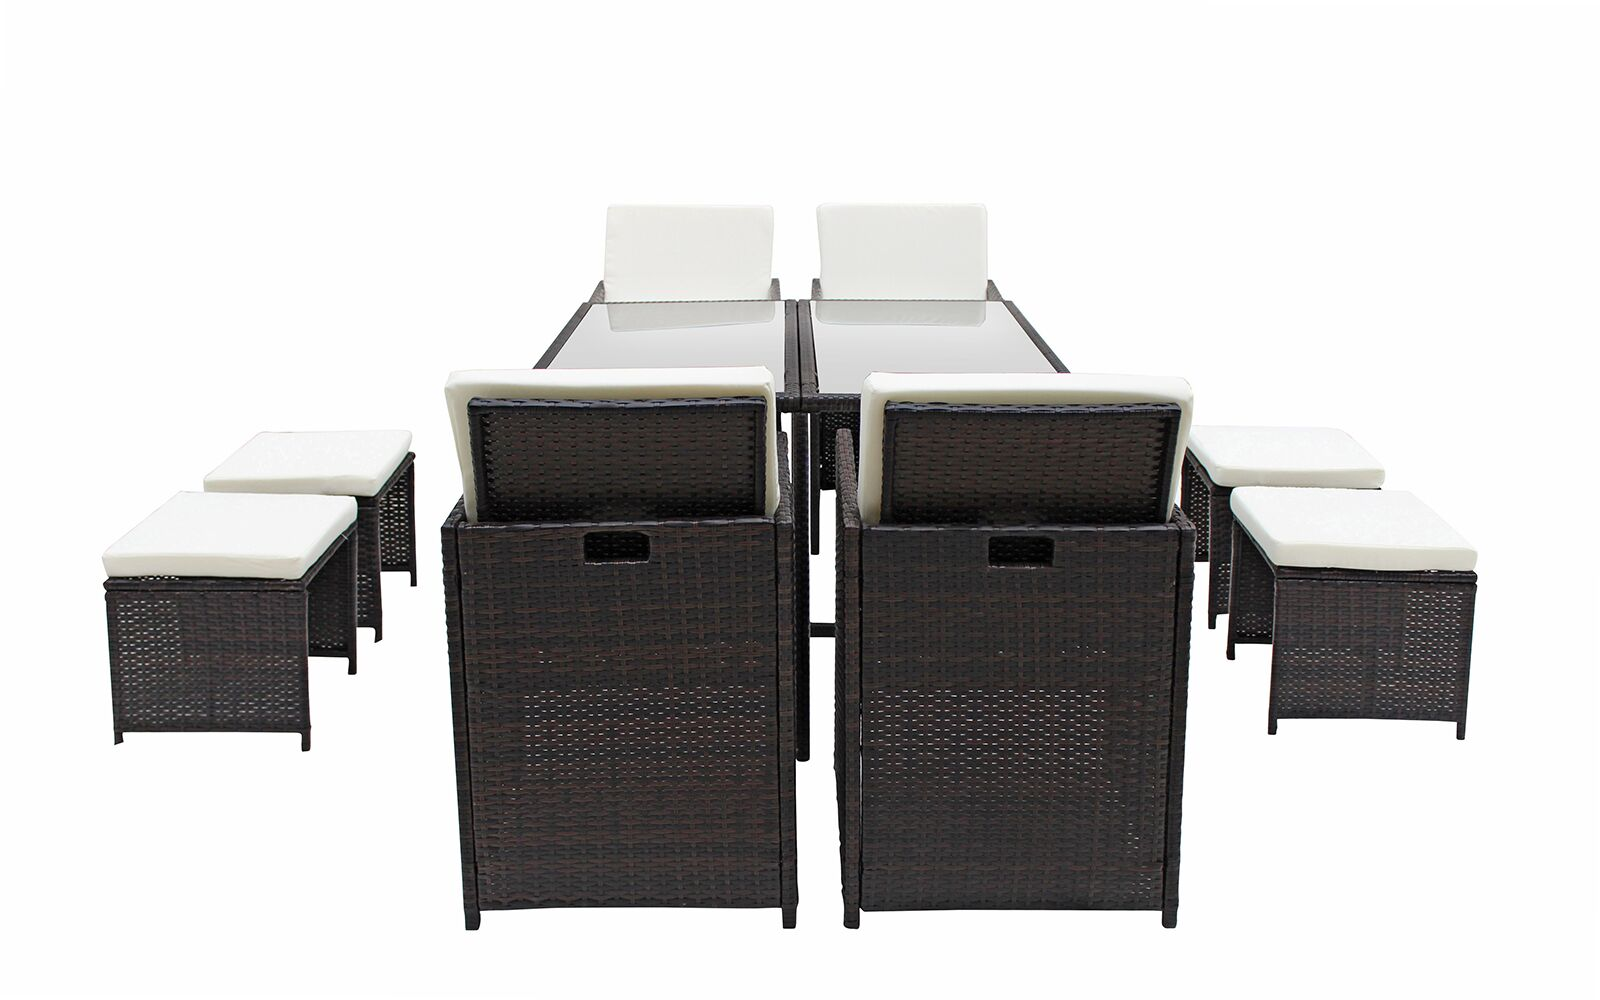 Cauley Space Saving Outdoor Furniture Rattan Patio 8 Piece Dining Set Cushion Color: Brown/Beige